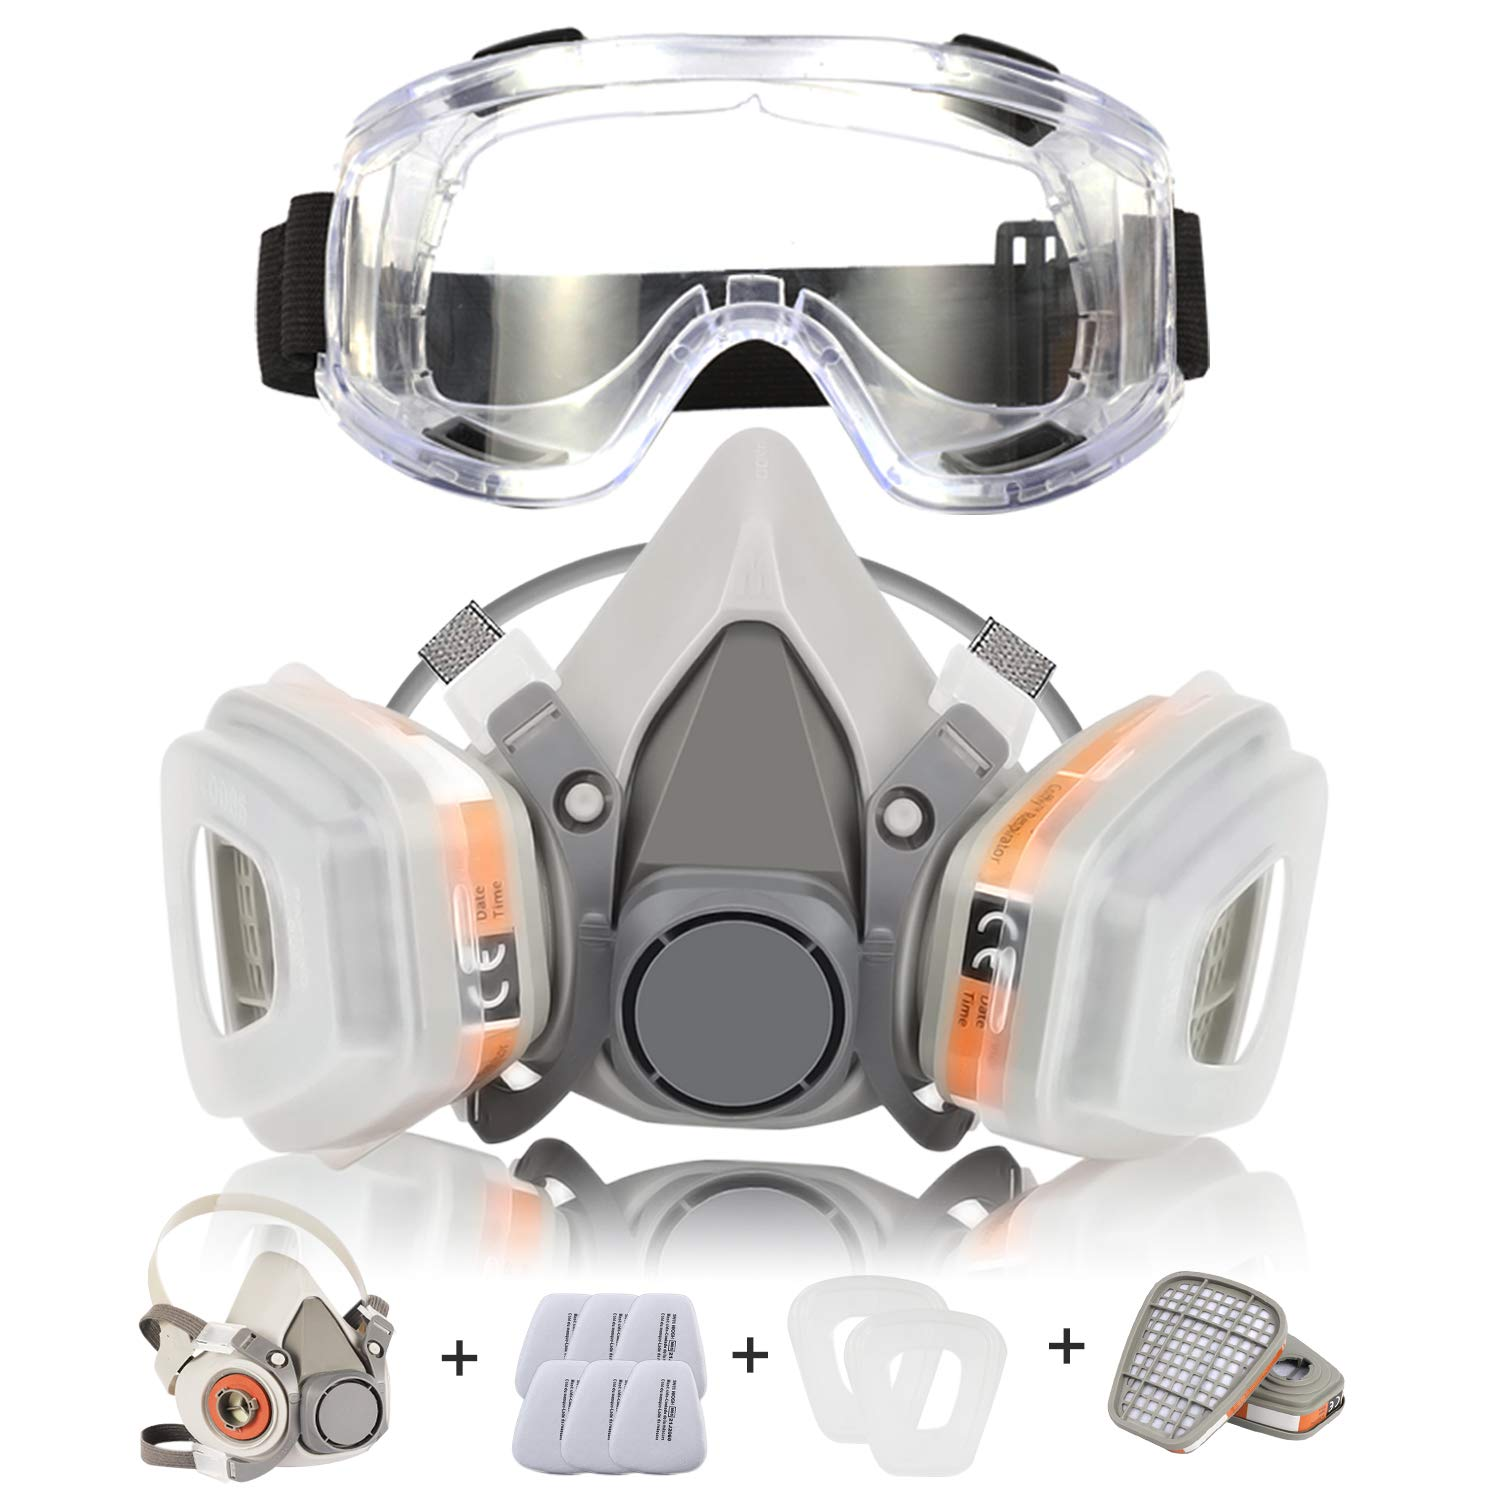 Respirator Mask Coffly Half Facepiece Gas Mask with Safety Glasses Reusable Professional Breathing Protection Against Dust, Organic Vapors, Pollen and Chemicals - Perfect For Painters and DIY Projects by Zelbuck